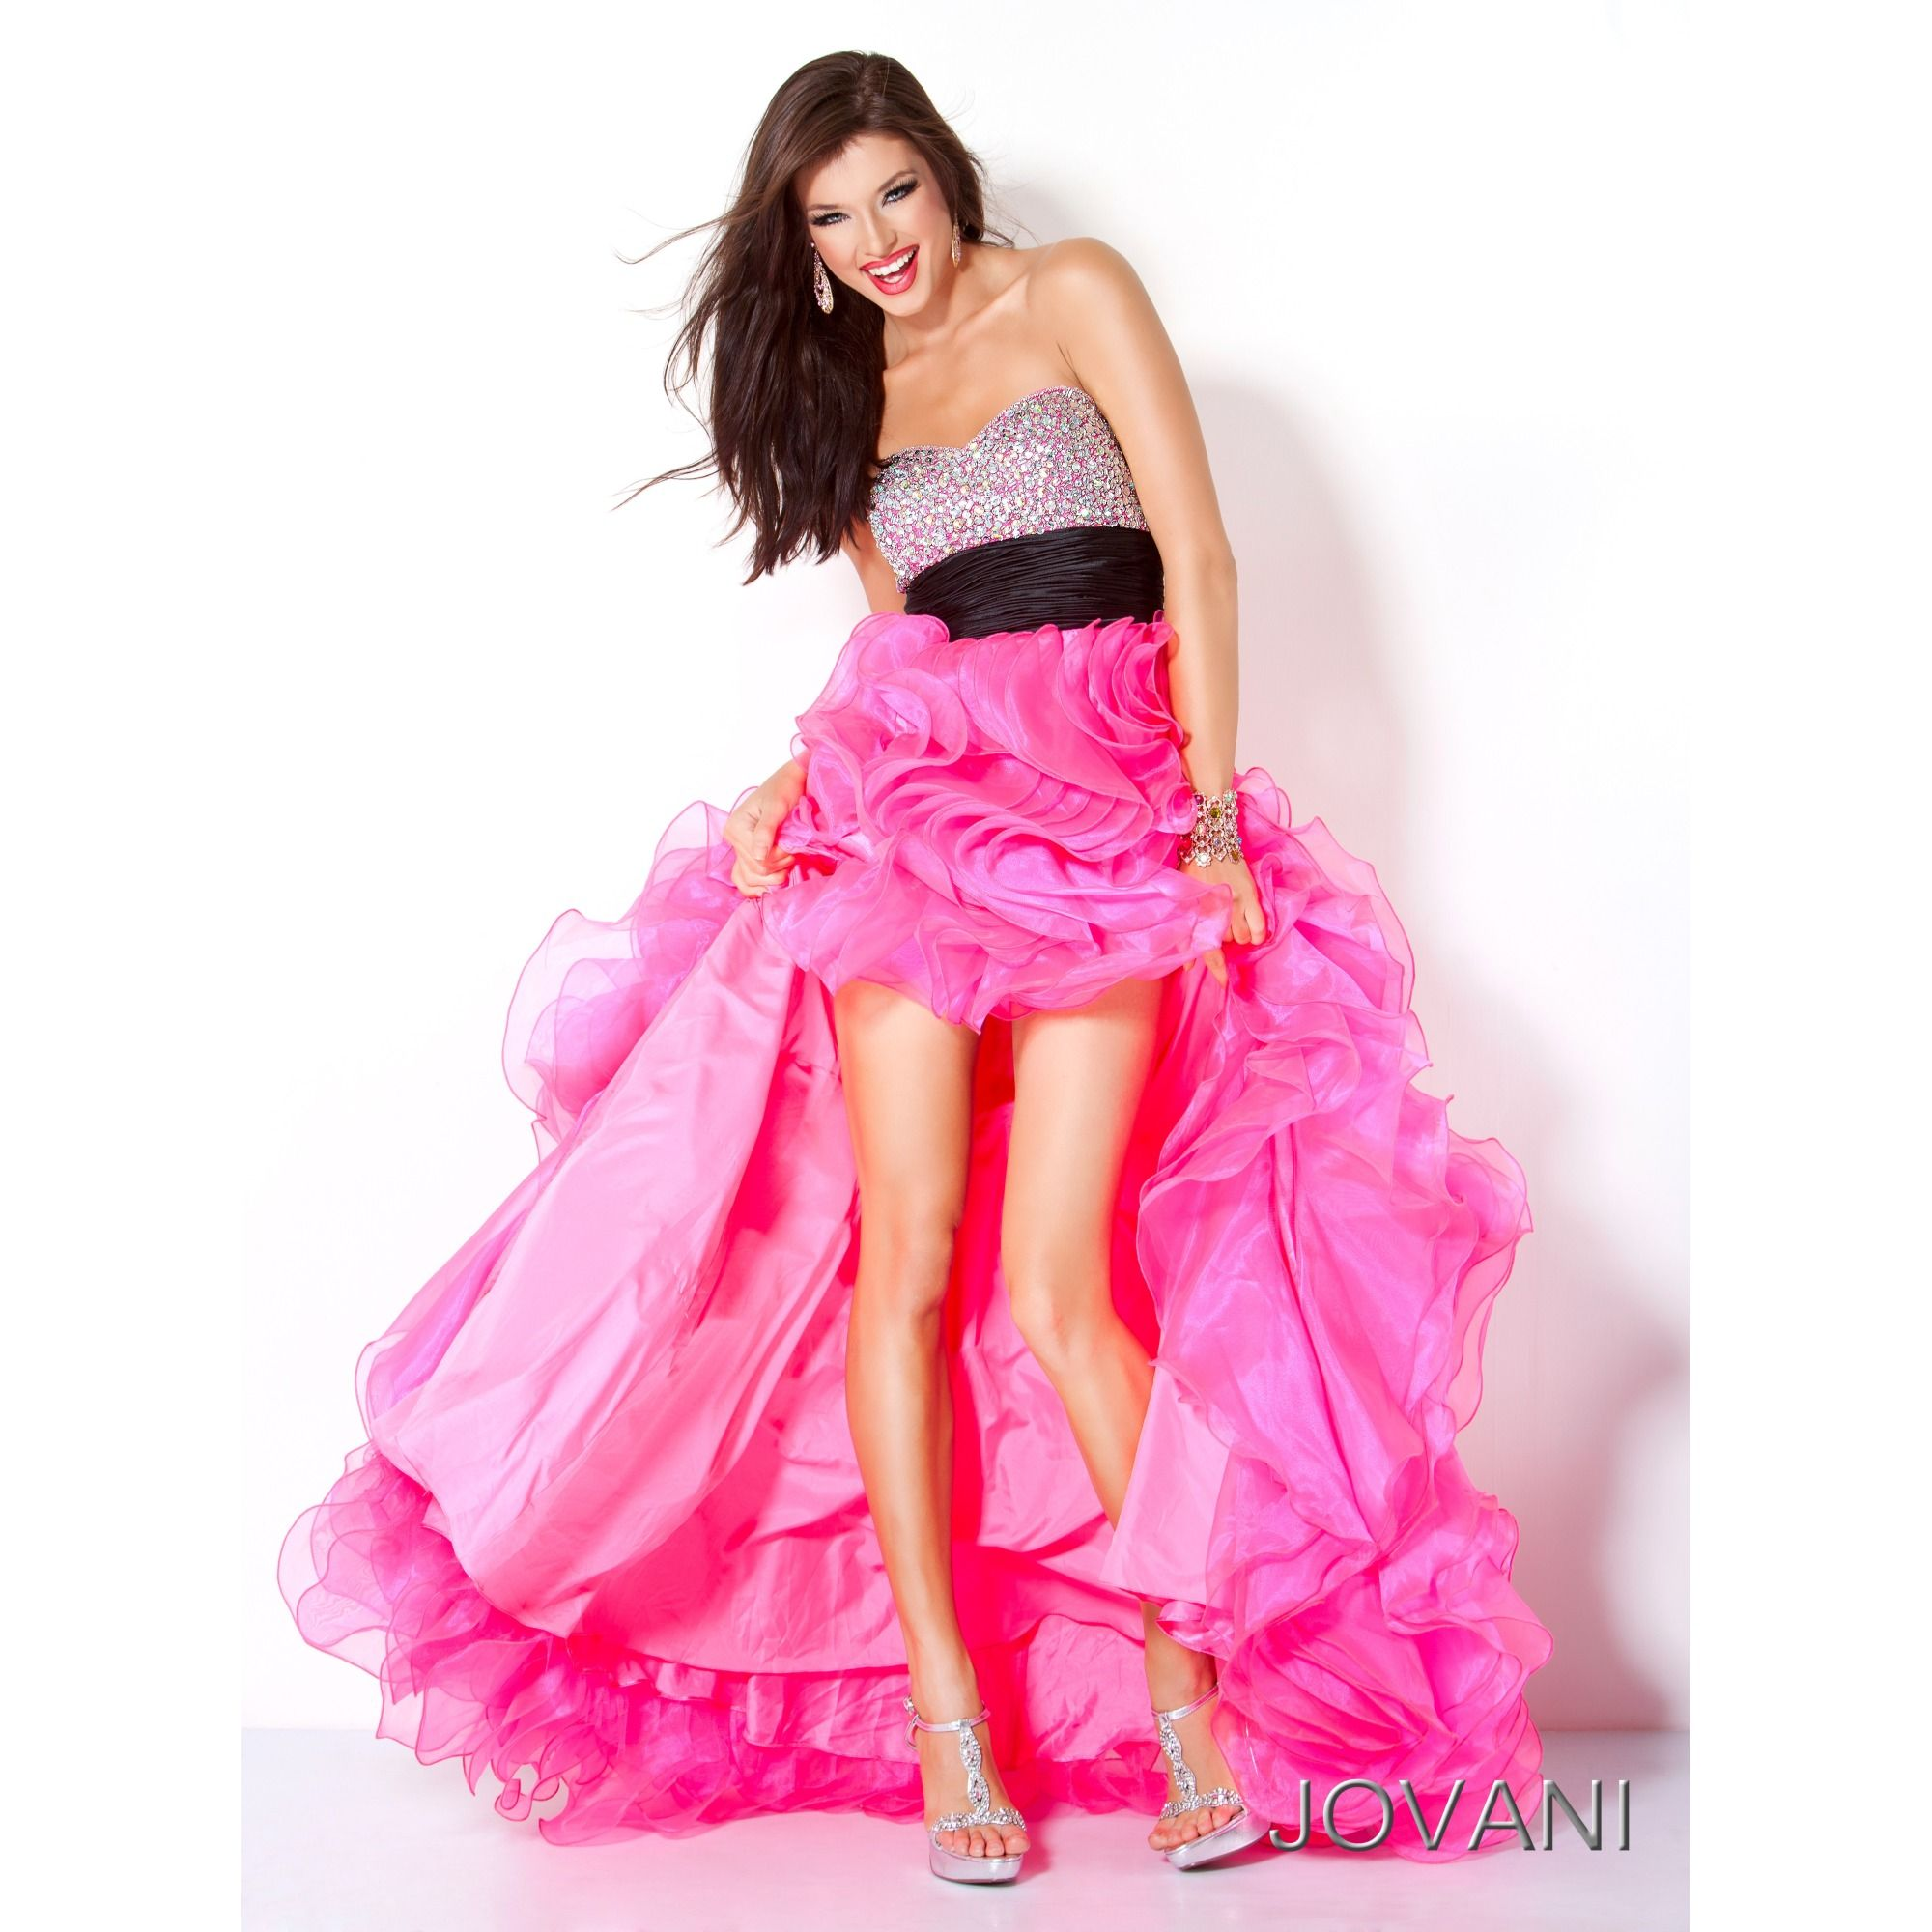 Jovani | prom dress | Pinterest